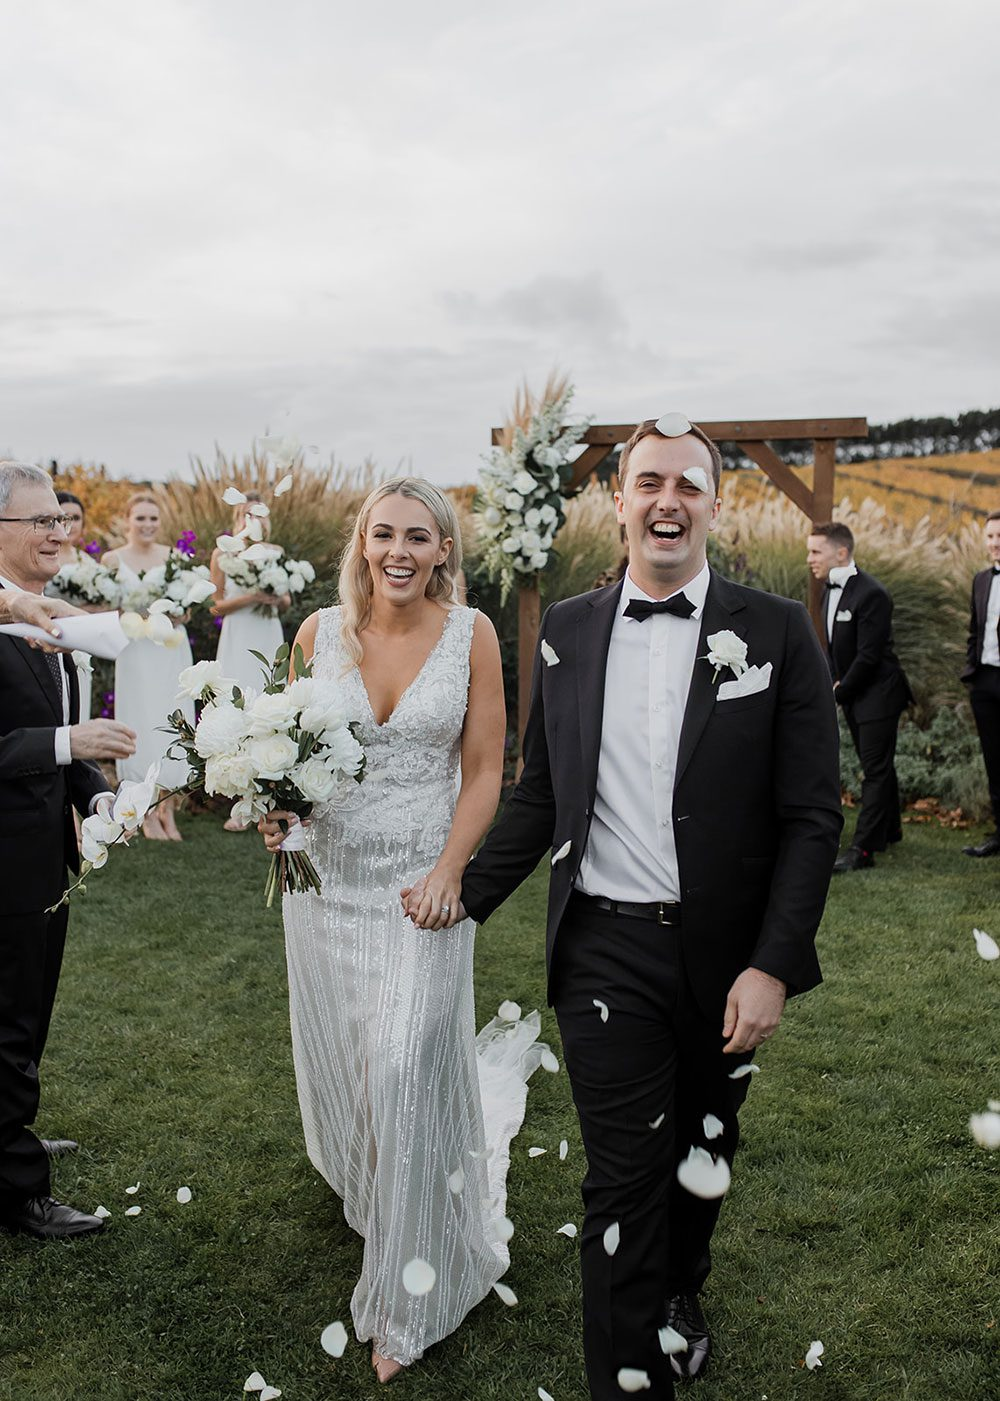 Bride wearing bespoke fitted V-neck gown in beaded lace with front split and sheer beaded overlay by Vinka bridal boutique NZ- just married